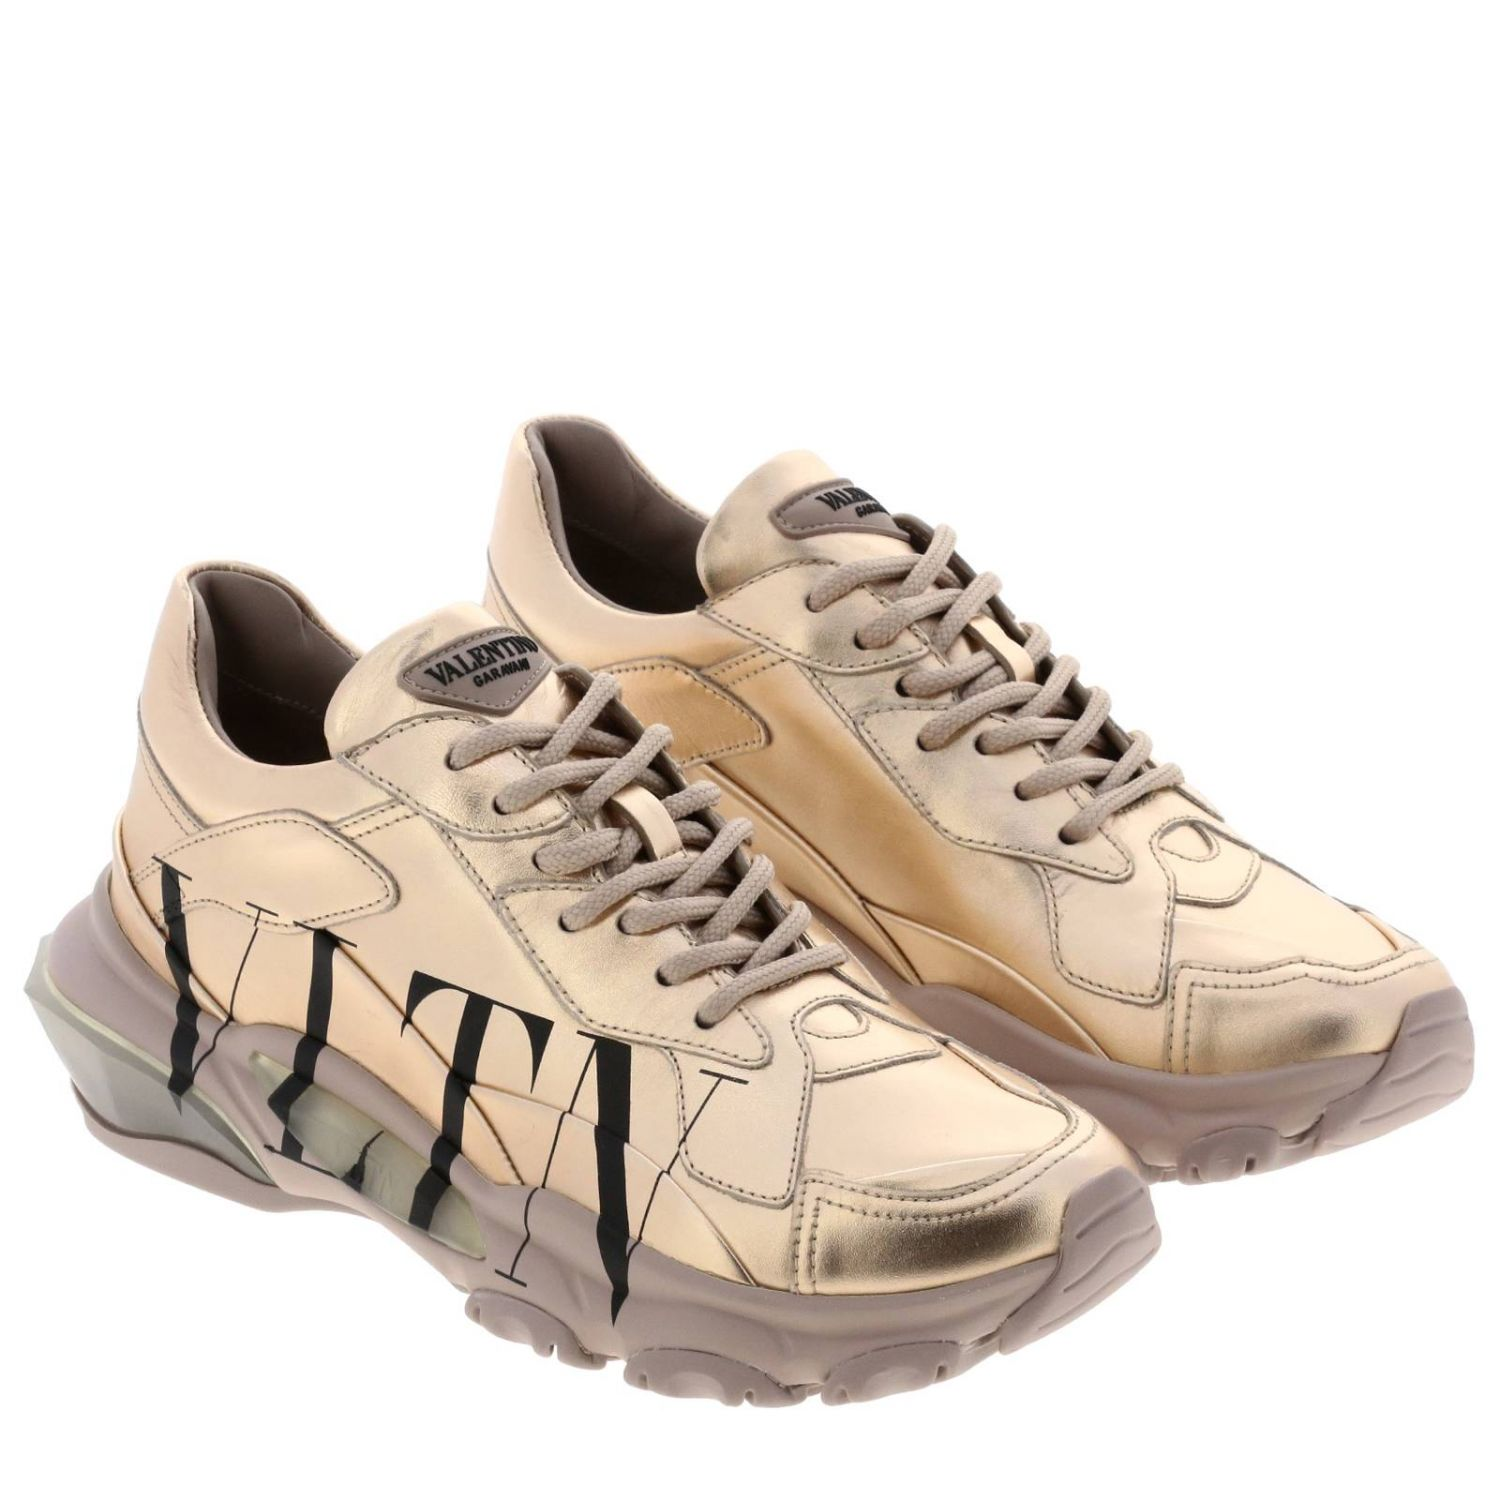 Valentino Garavani laminated genuine leather shoes with VLTN print blush pink 2